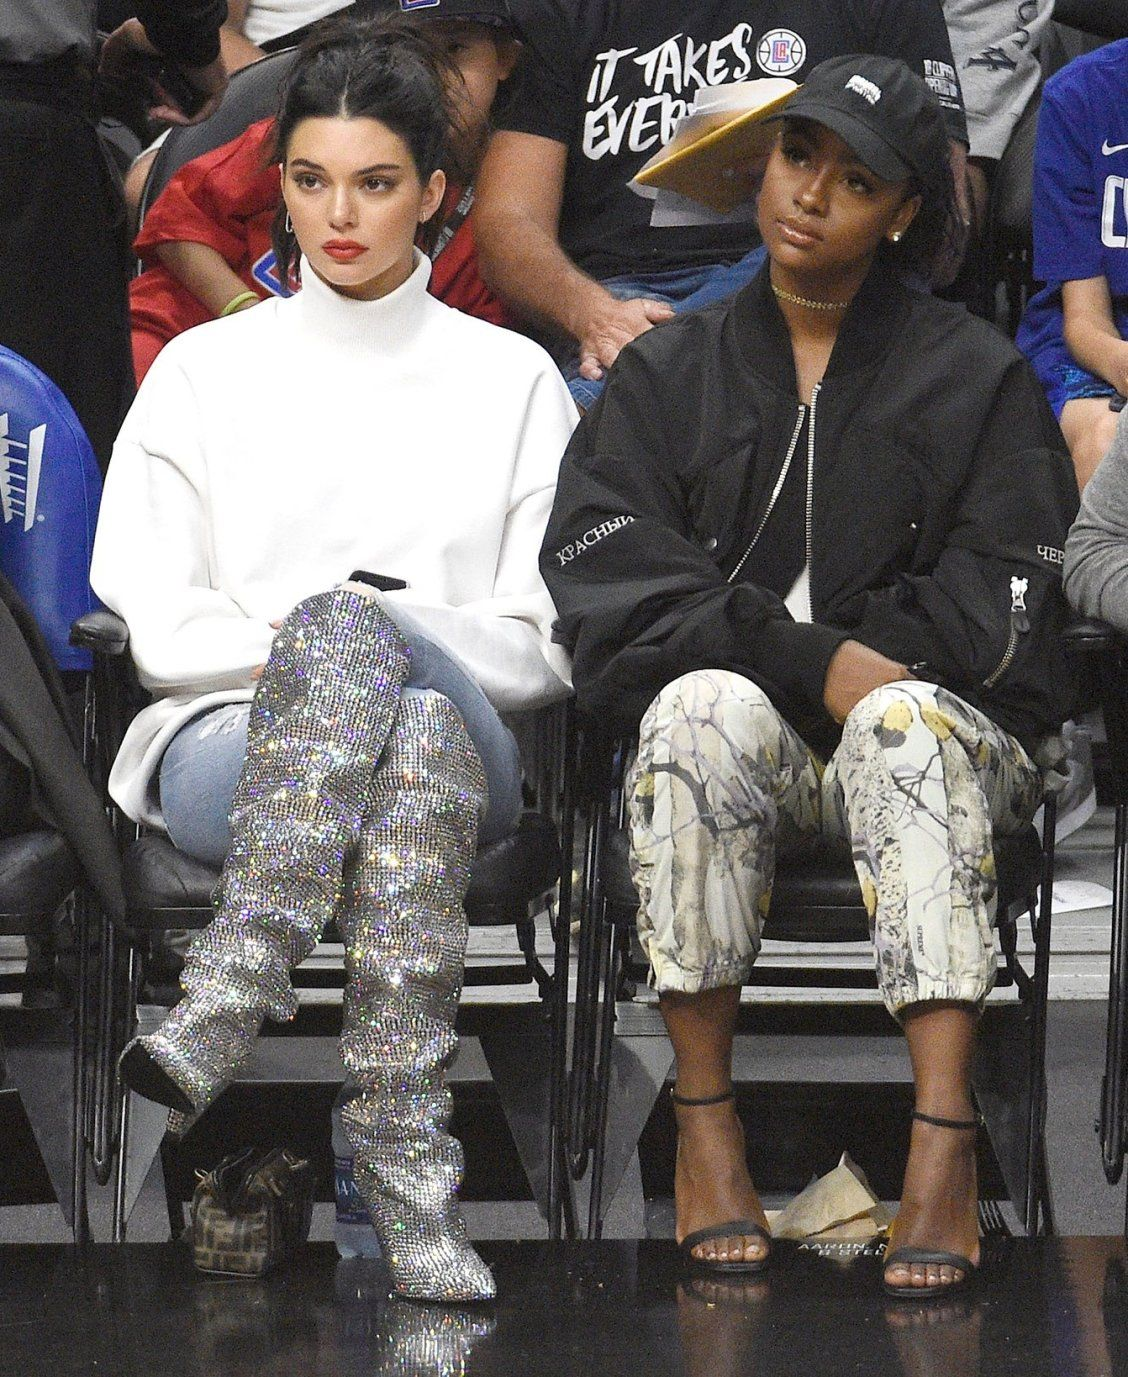 3a56d72d9 Shop the Designer Boots Celebrities Love - Kendall Jenner s sparkly YSL  boots Kendall Jenner Outfits